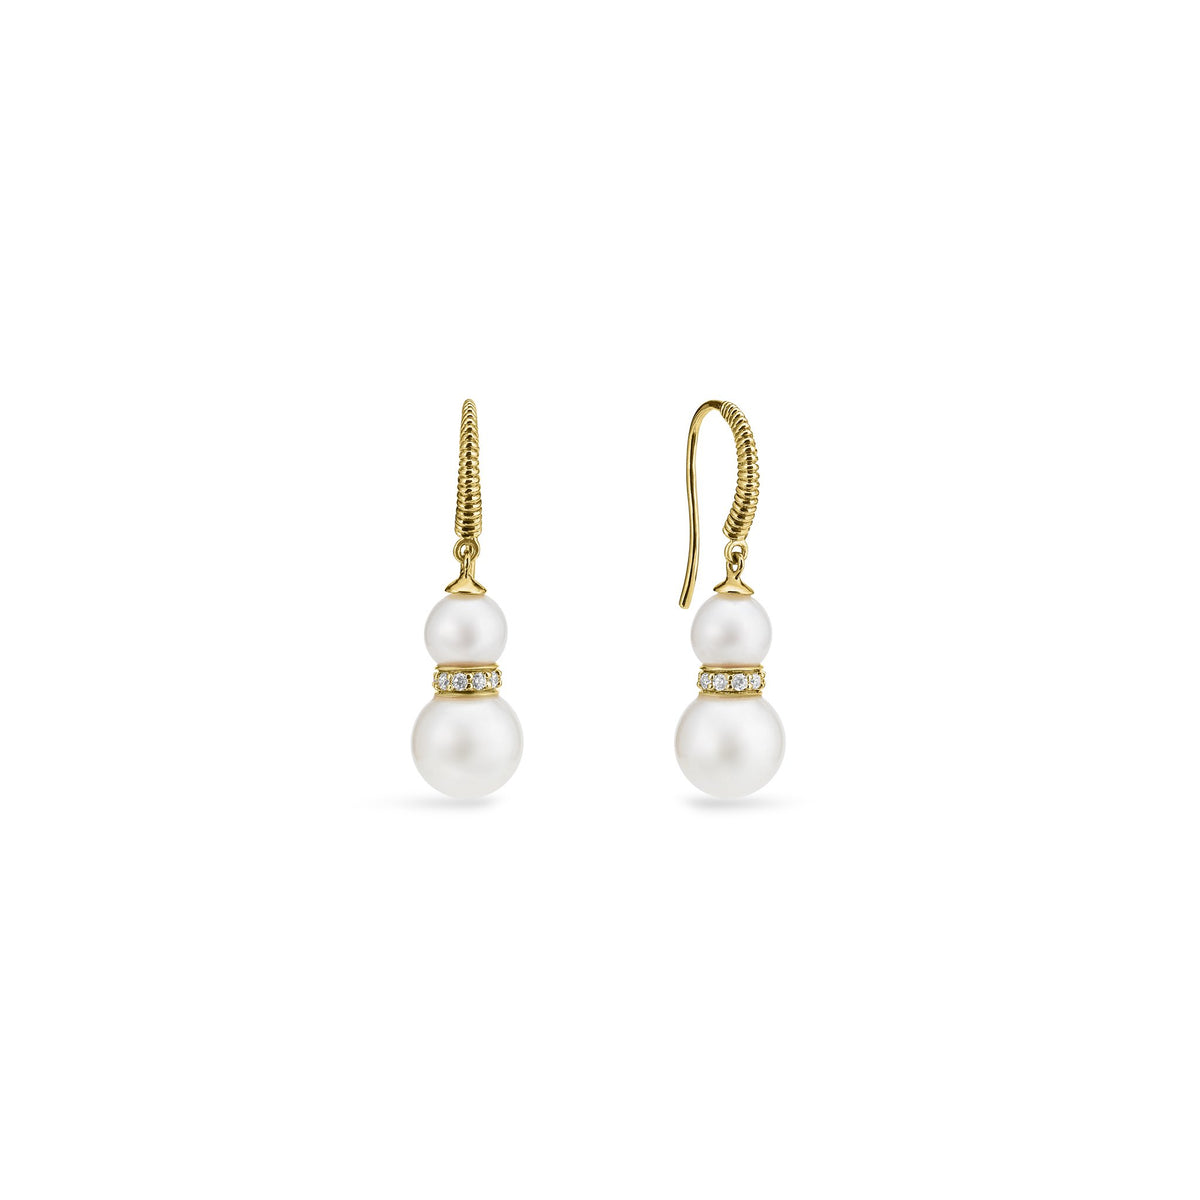 Shima Double Drop Earrings with Freshwater Pearls and Diamonds in 18K